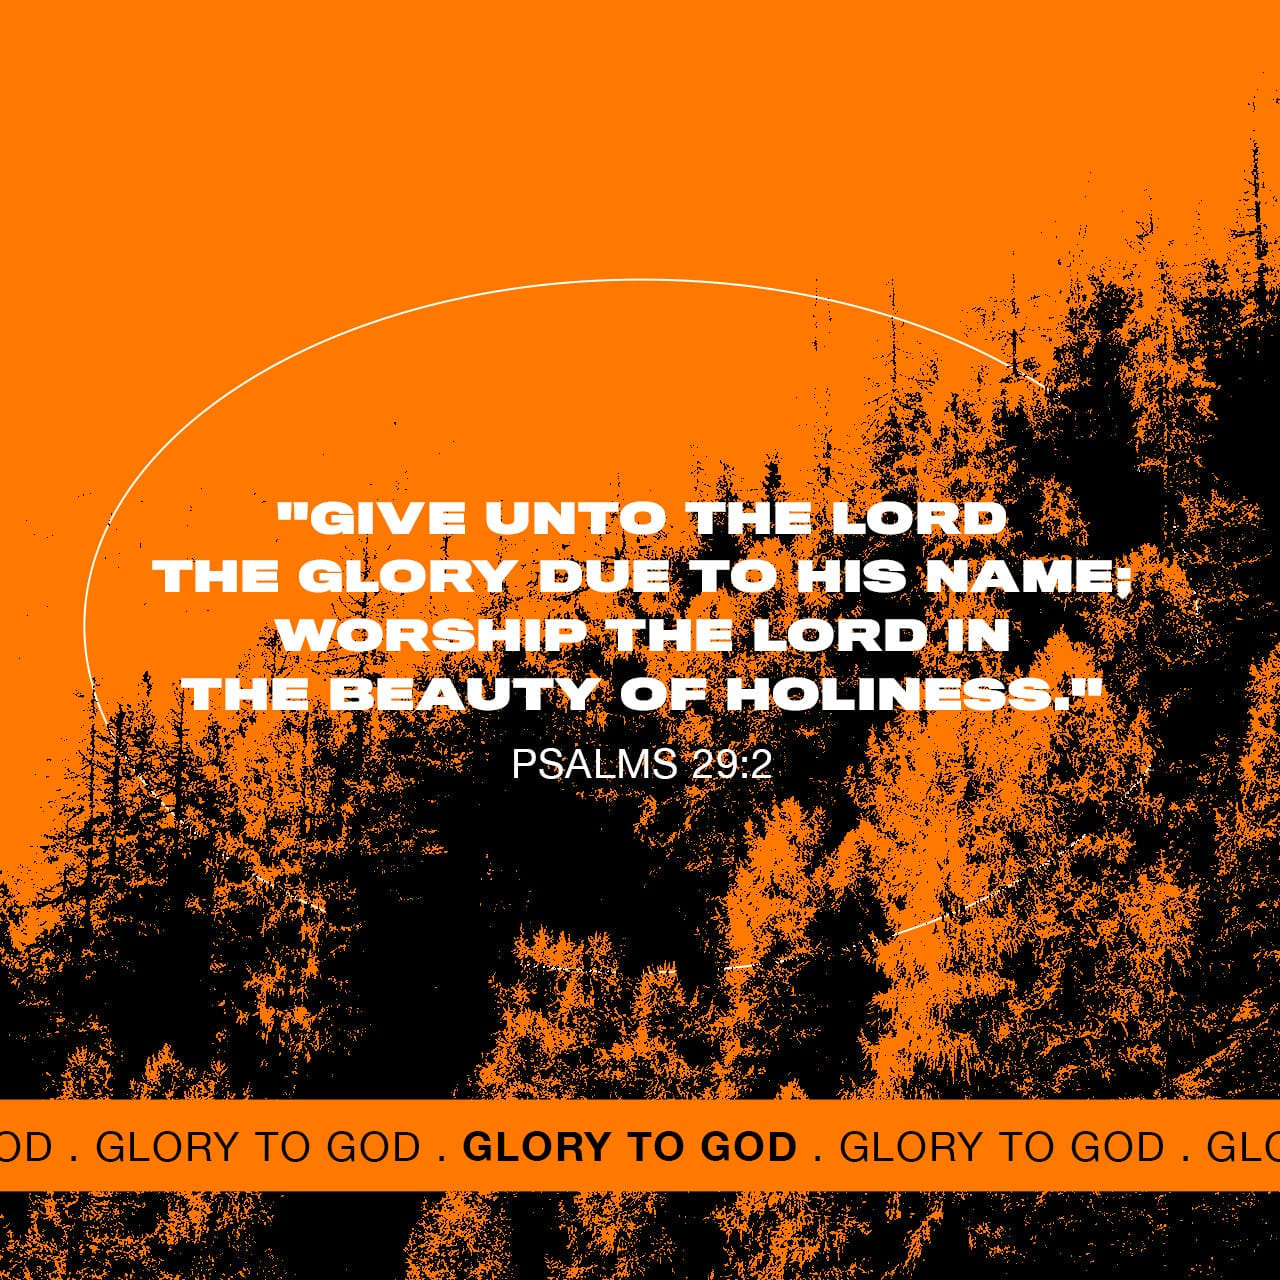 Give unto the Lord the glory due unto his name; worship the Lord in the beauty of holiness. - Psalms 29:2 - Verse Image